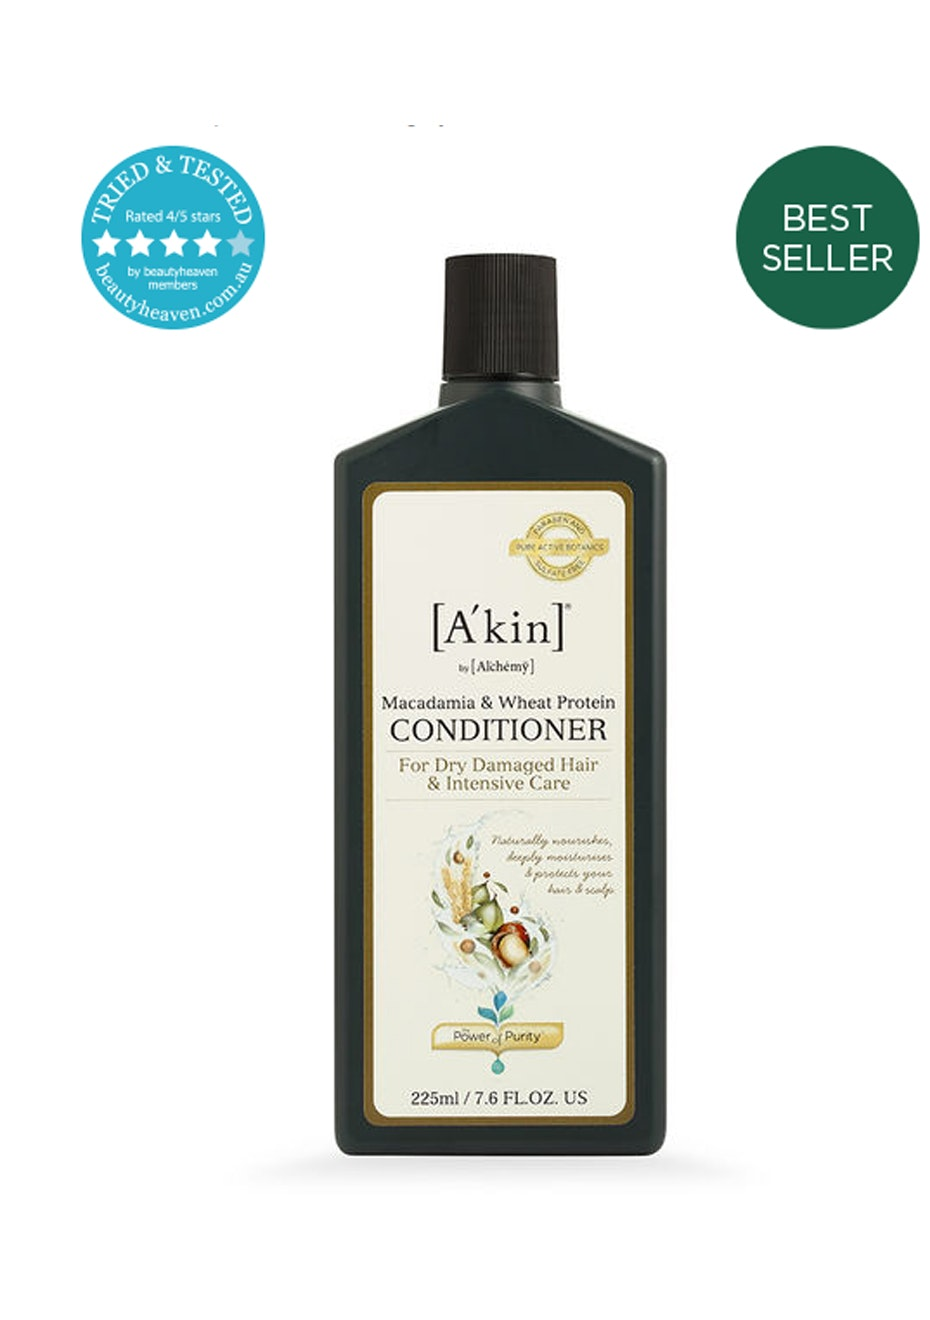 A'kin  - Macadamia & Wheat Protein Conditioner 225ml